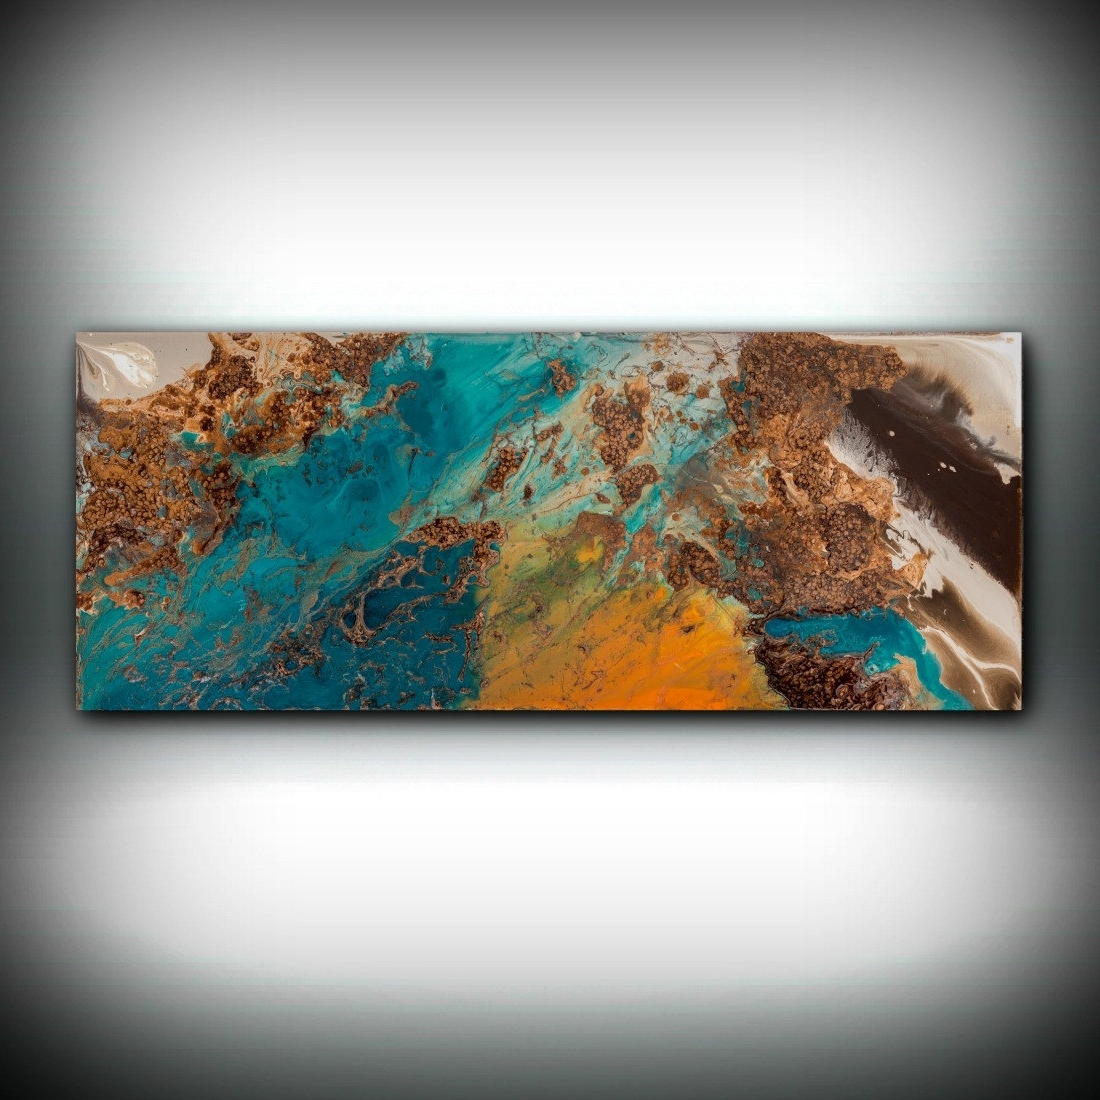 Best And Newest Sale Blue And Copper Art, Wall Art Prints Fine Art Prints Abstract For Modern Wall Art For Sale (View 2 of 15)